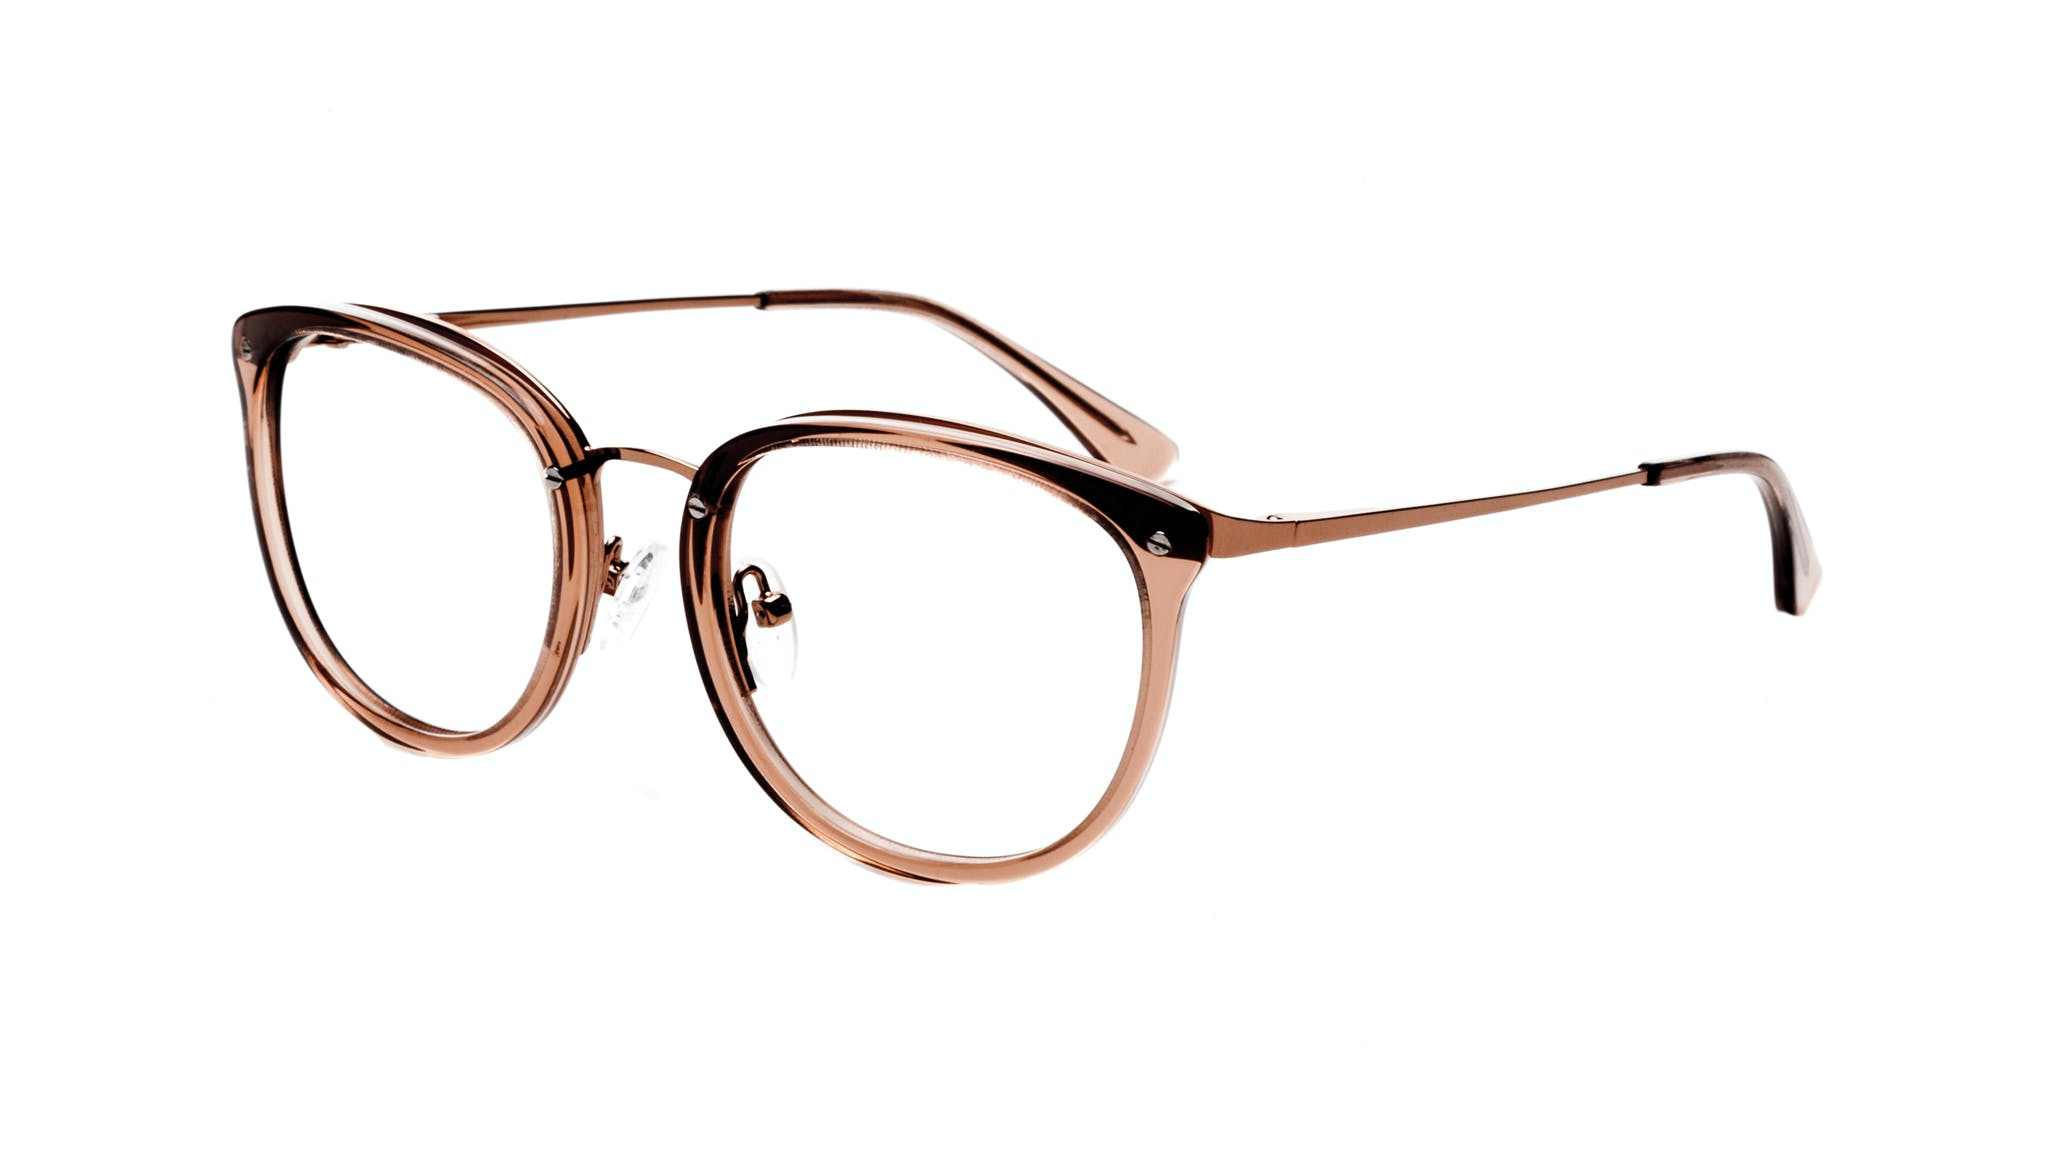 Affordable Fashion Glasses Square Round Eyeglasses Women Amaze Rose Tilt